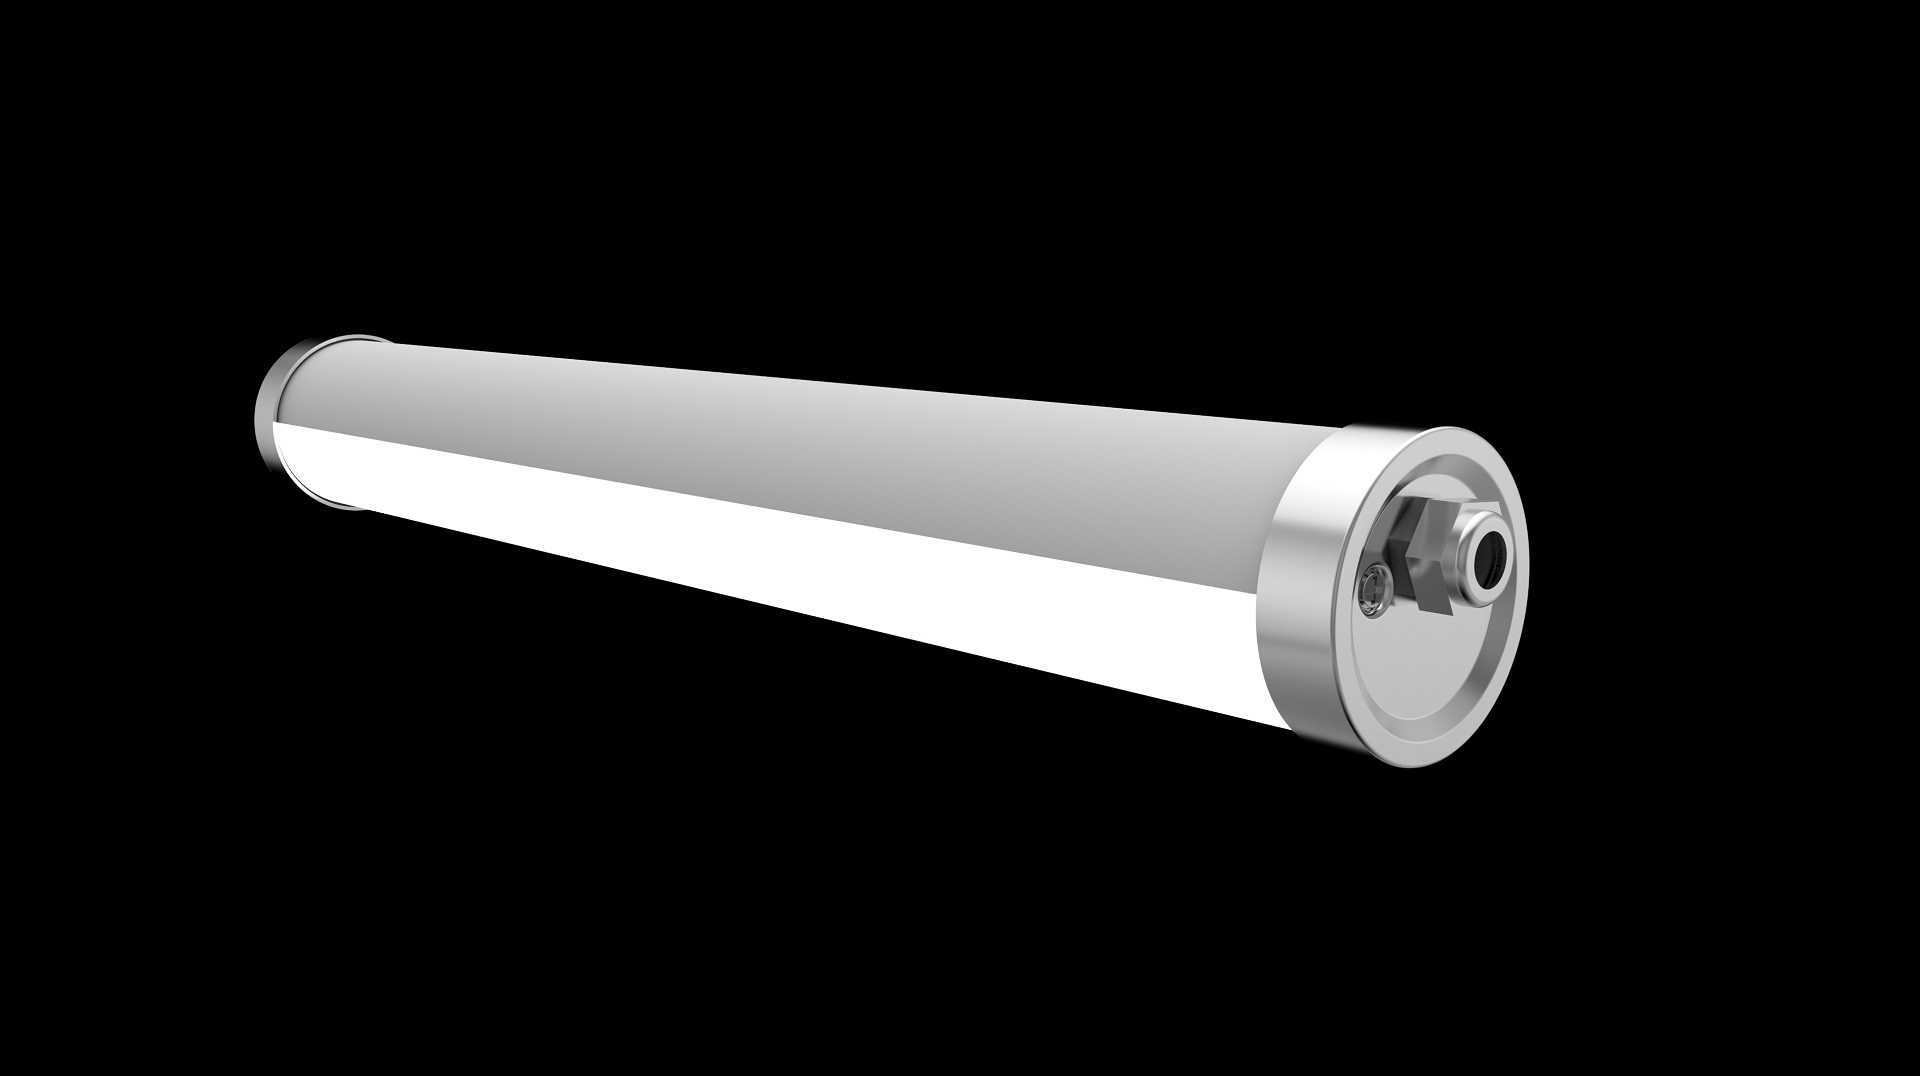 600mm IP69K round tri-proof led light with stainless steel 316 end caps